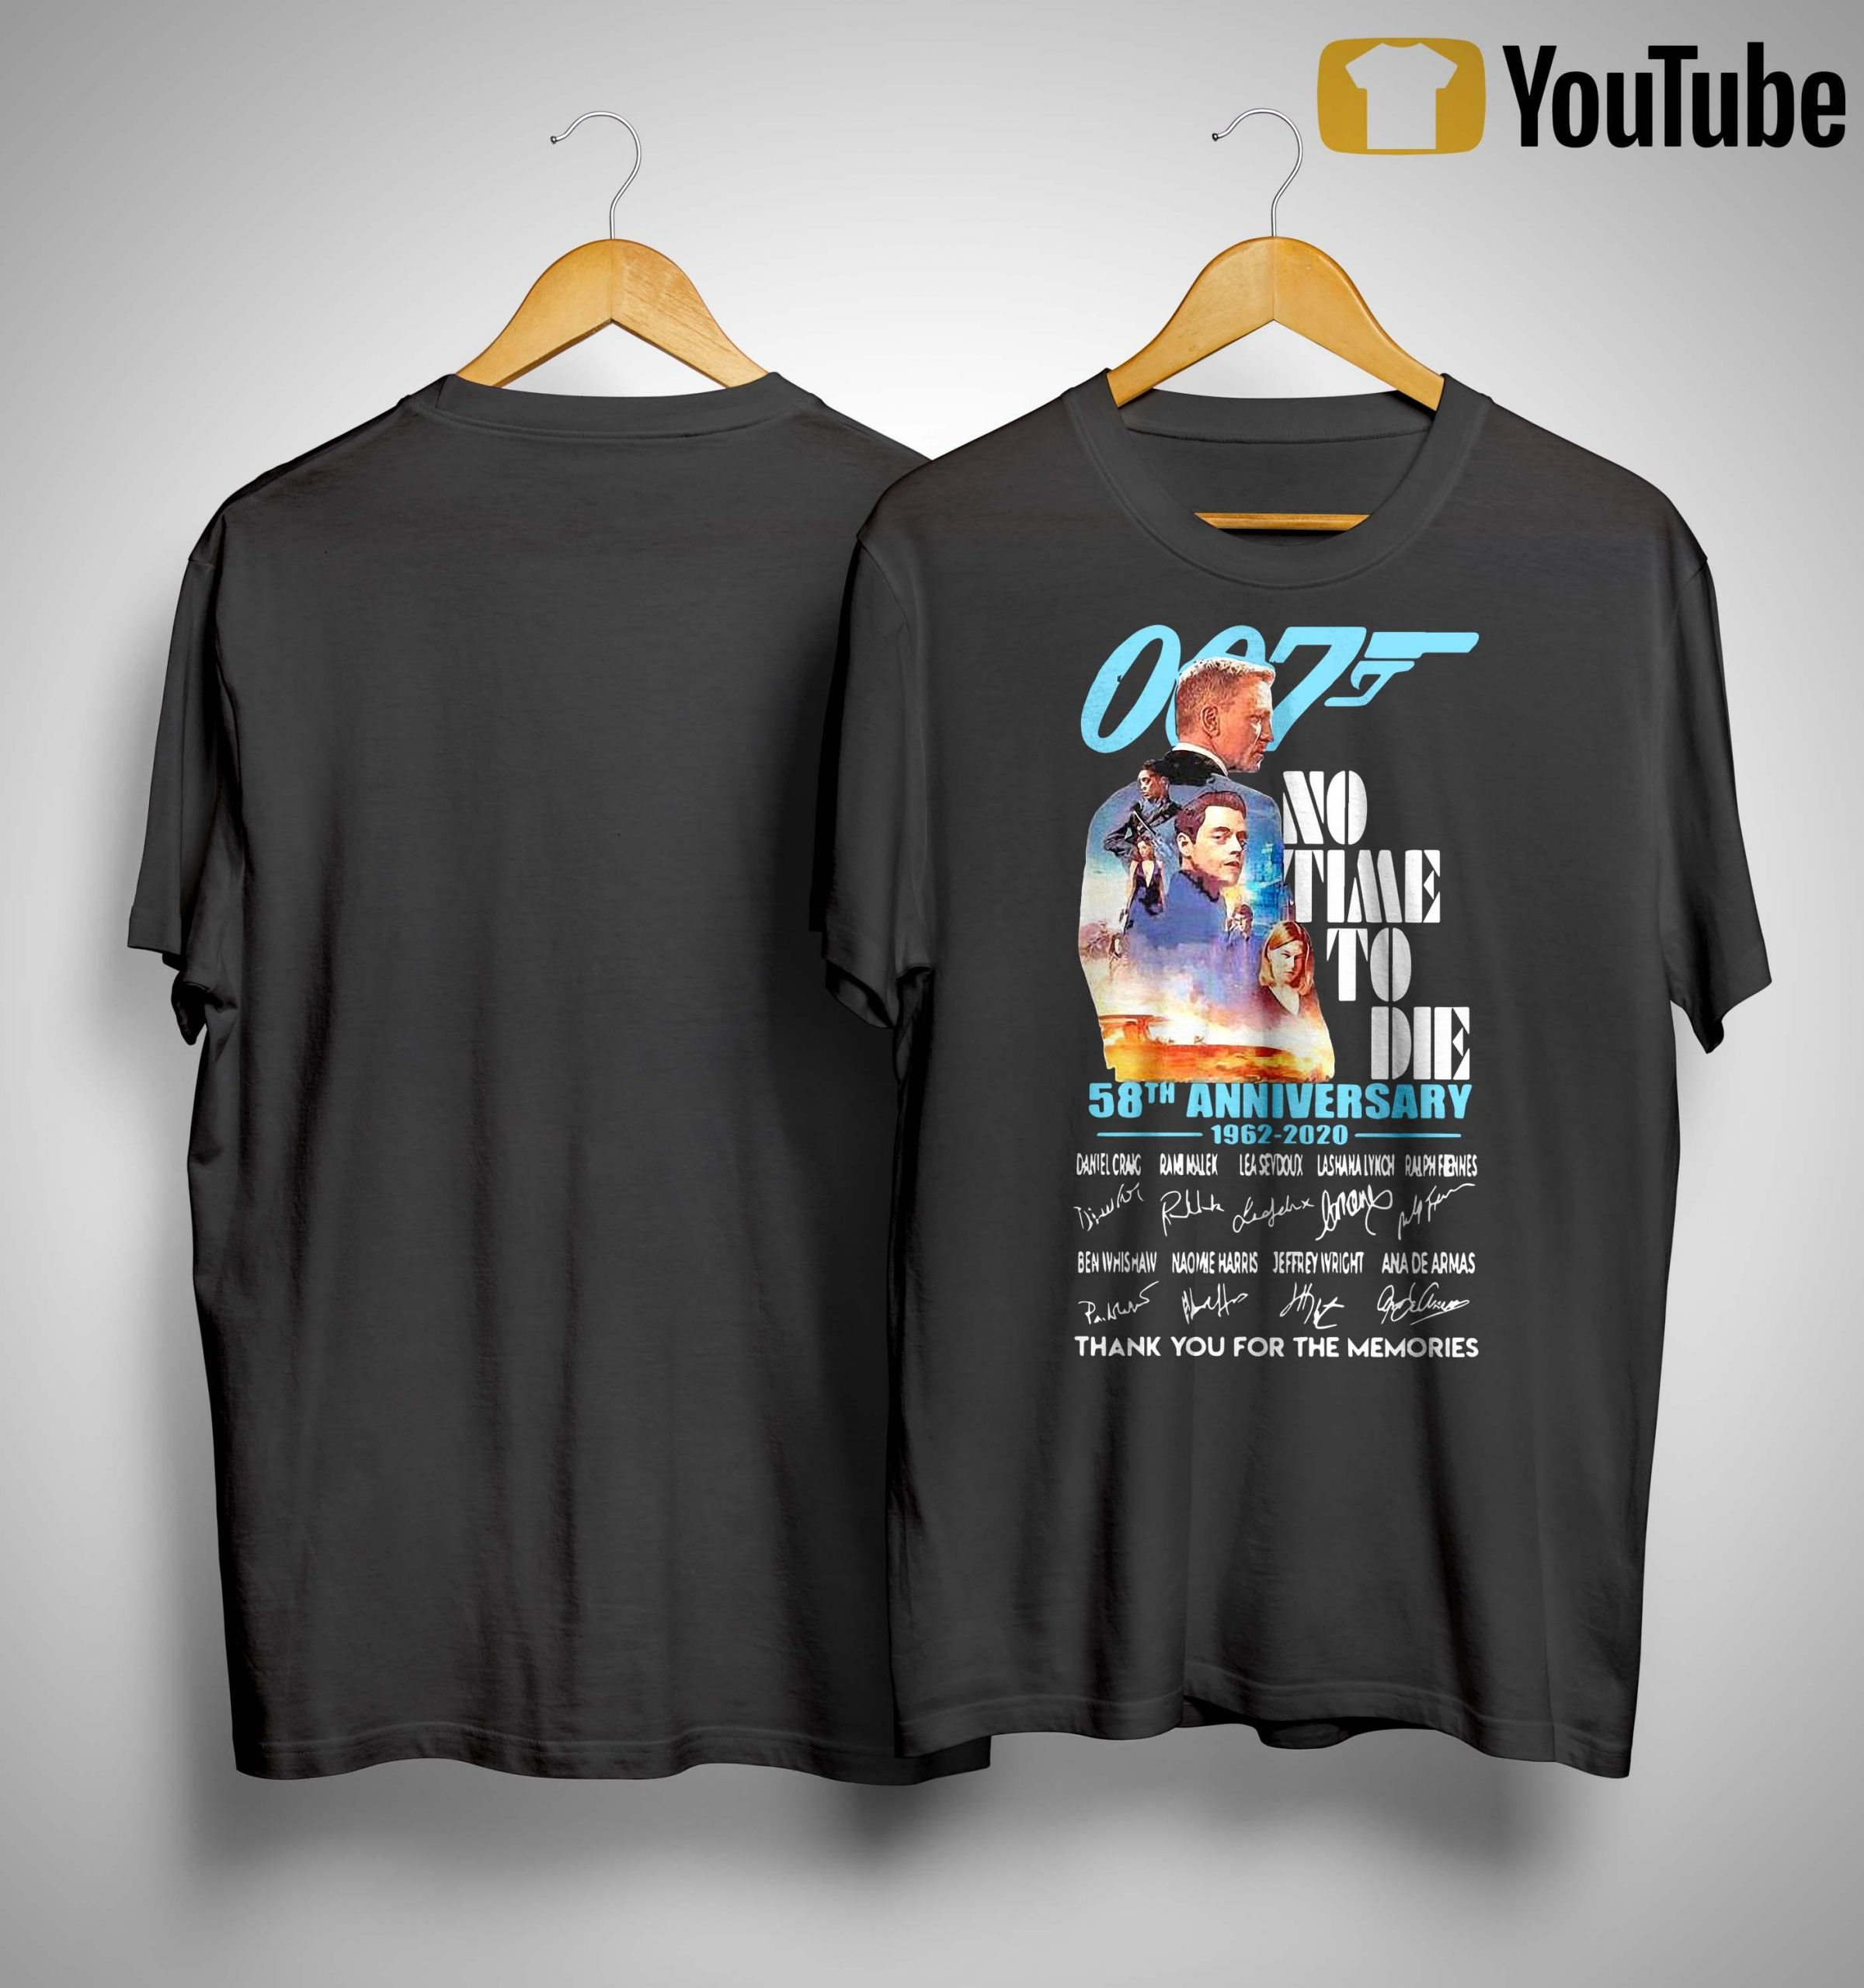 007 James Bond No Time To Die 58th Anniversary 1962 2020 Shirt